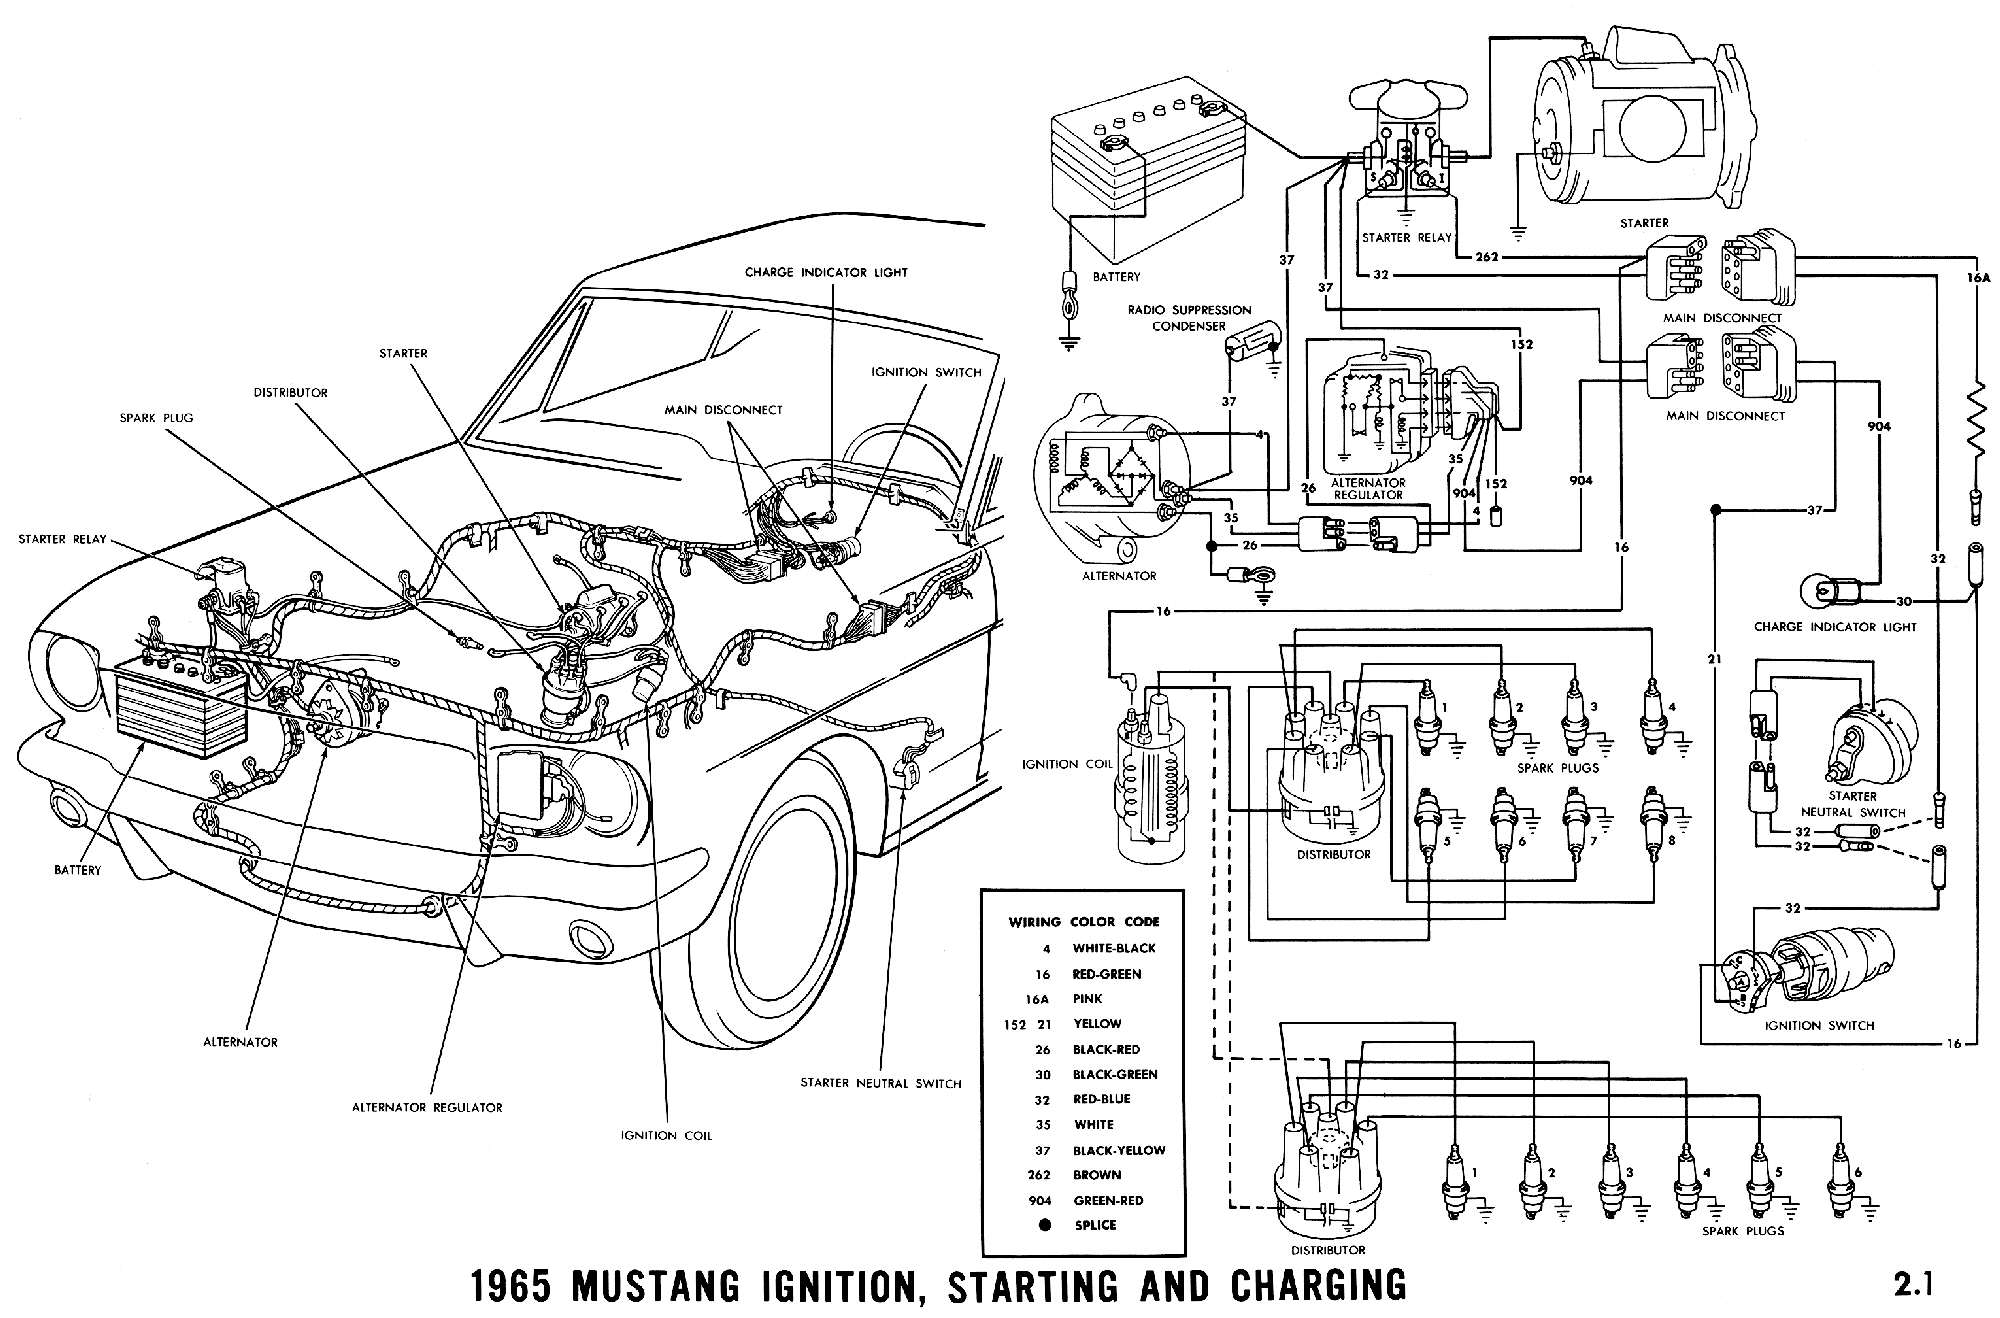 65 Mustang Wiring Diagram Data Harley Davidson Harness 1965 Diagrams Average Joe Restoration Generator Ignition